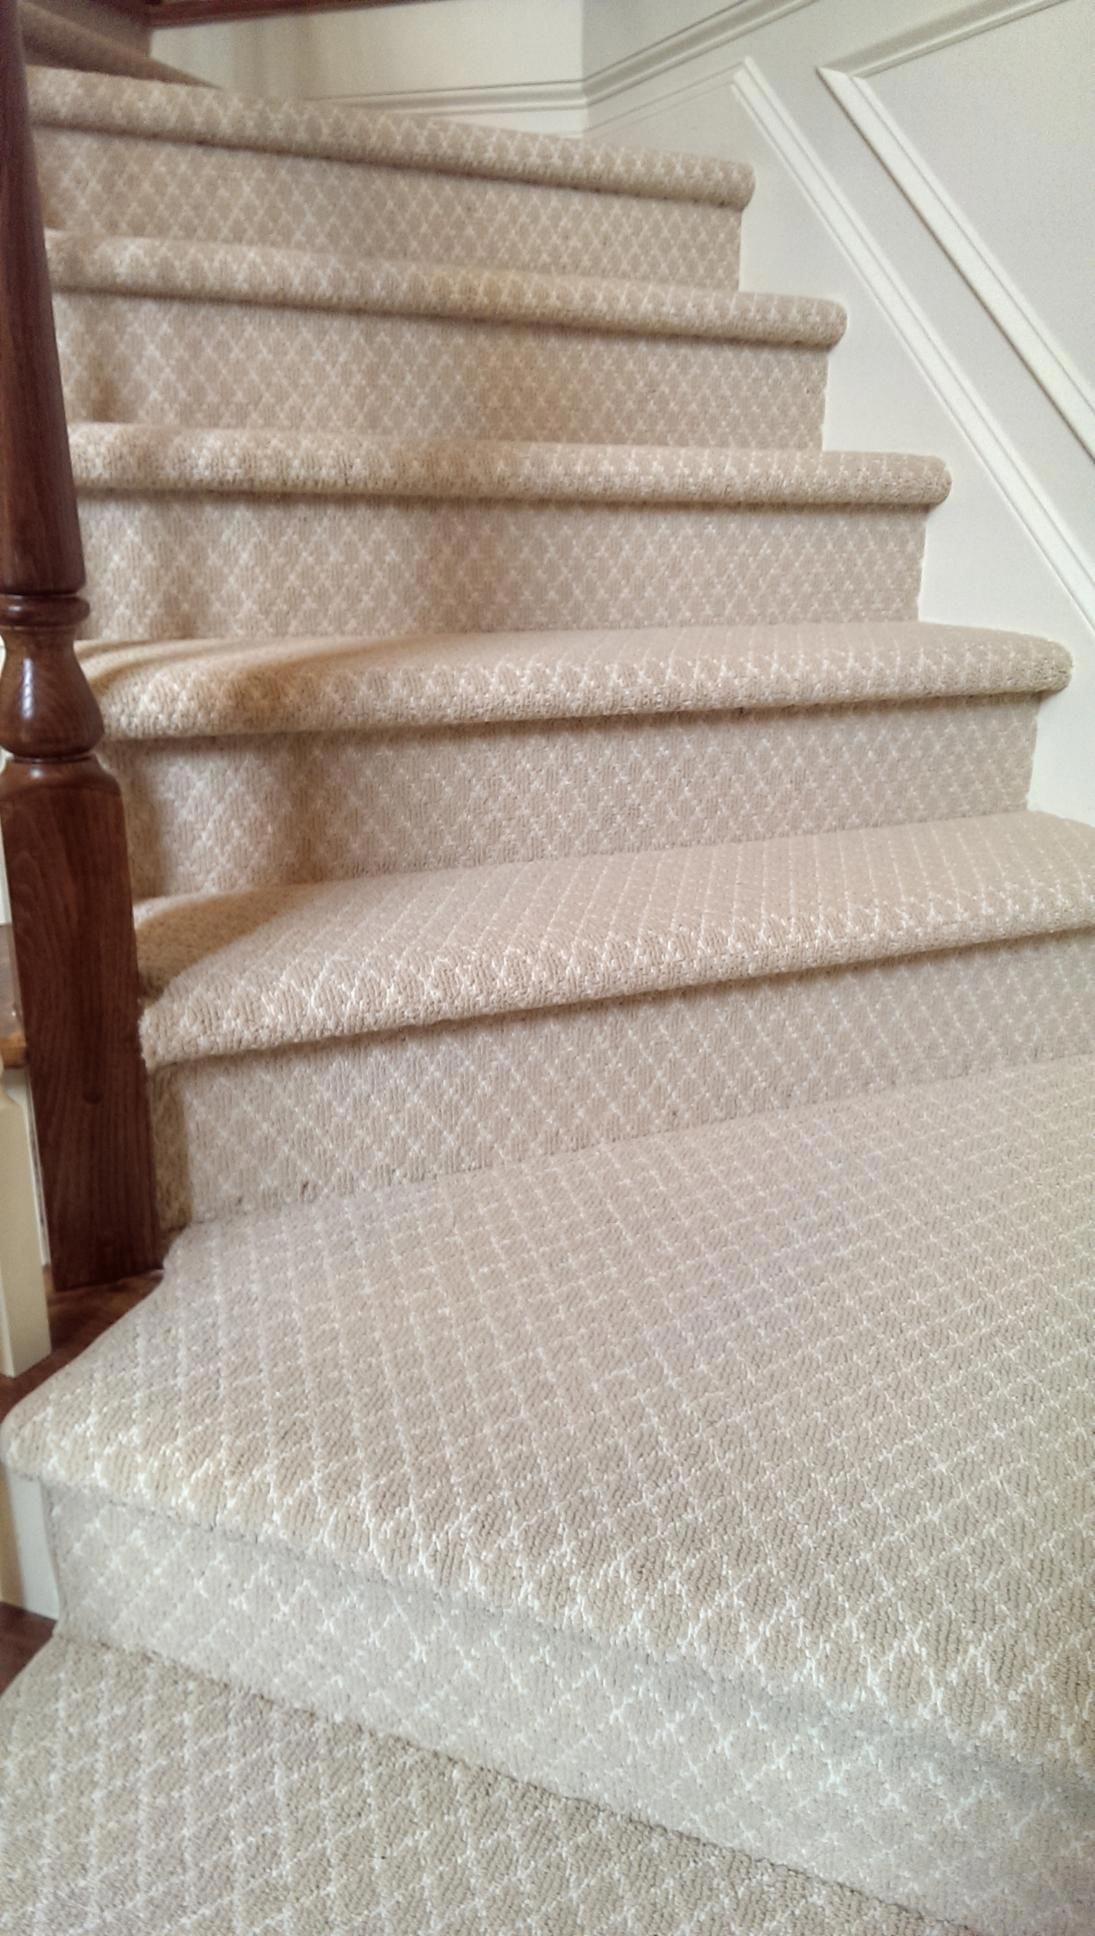 Carpet Runners For Stairs Uk Carpetrunnerscuttosize Info | Best Carpet For Stairs | Indoor Outdoor | Stairway | Decorative | Traditional | Carpet Grey Carpet Up Centre